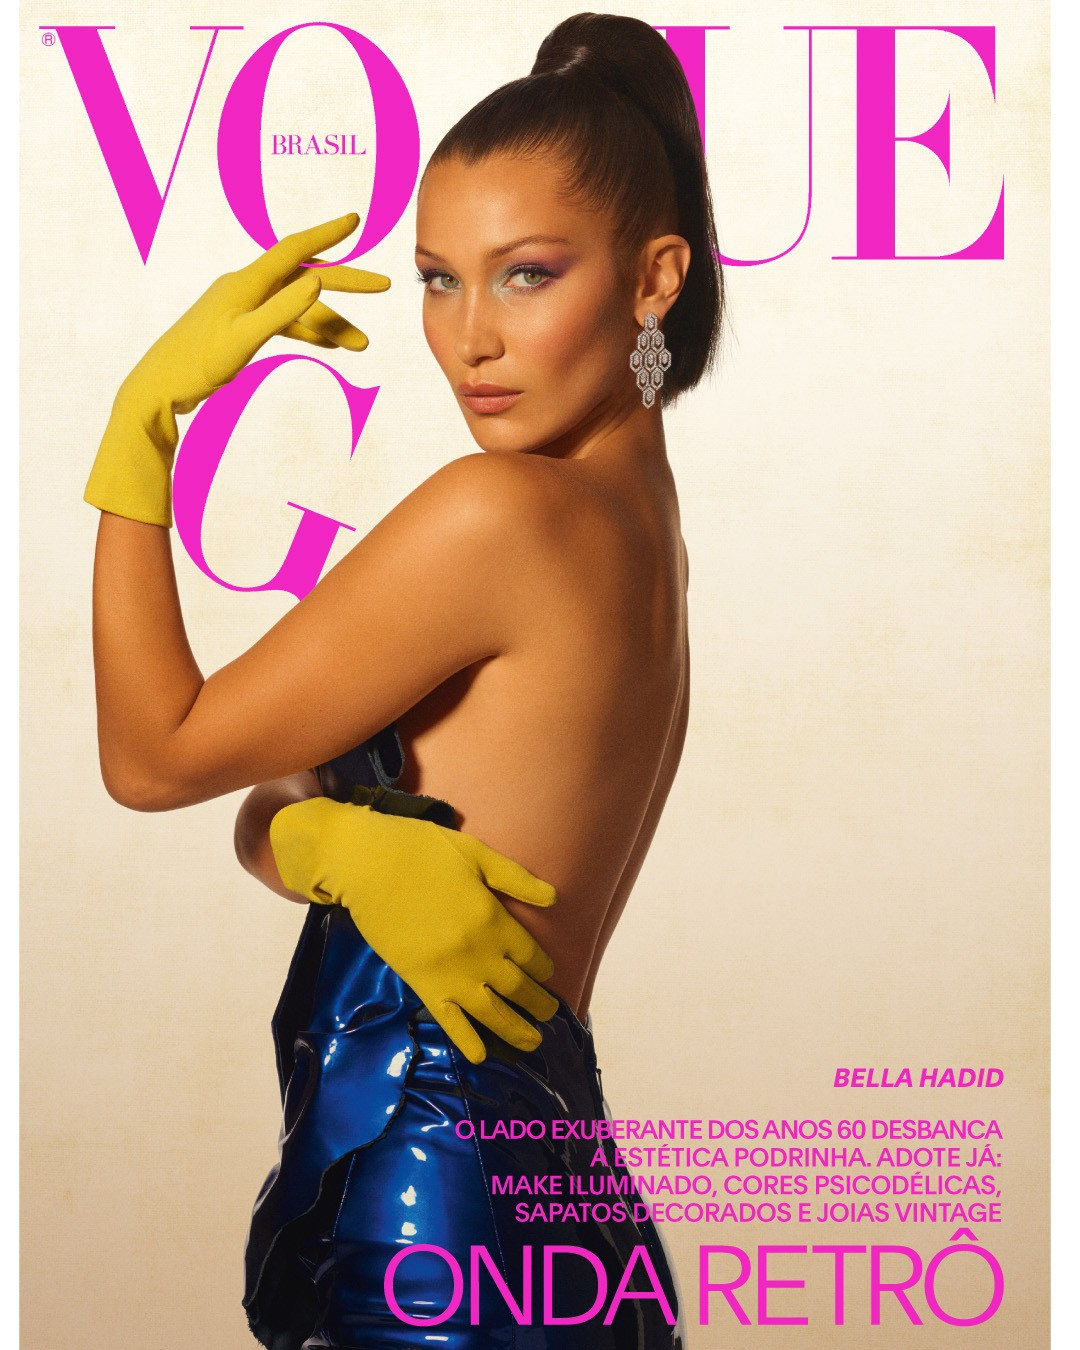 Bella Hadid (IMG), fotografada por Gui Paganini, usa vestido Saint Laurent e brinco Bulgari. Edição de moda: Yasmine Sterea. Maquiagem: Morgane Martini (The Wall Group). Cabelo: Danilo (The Wall Group). Produção executiva: Marcus Chang (Batu Projects NYC) (Foto: Gui Paganini)